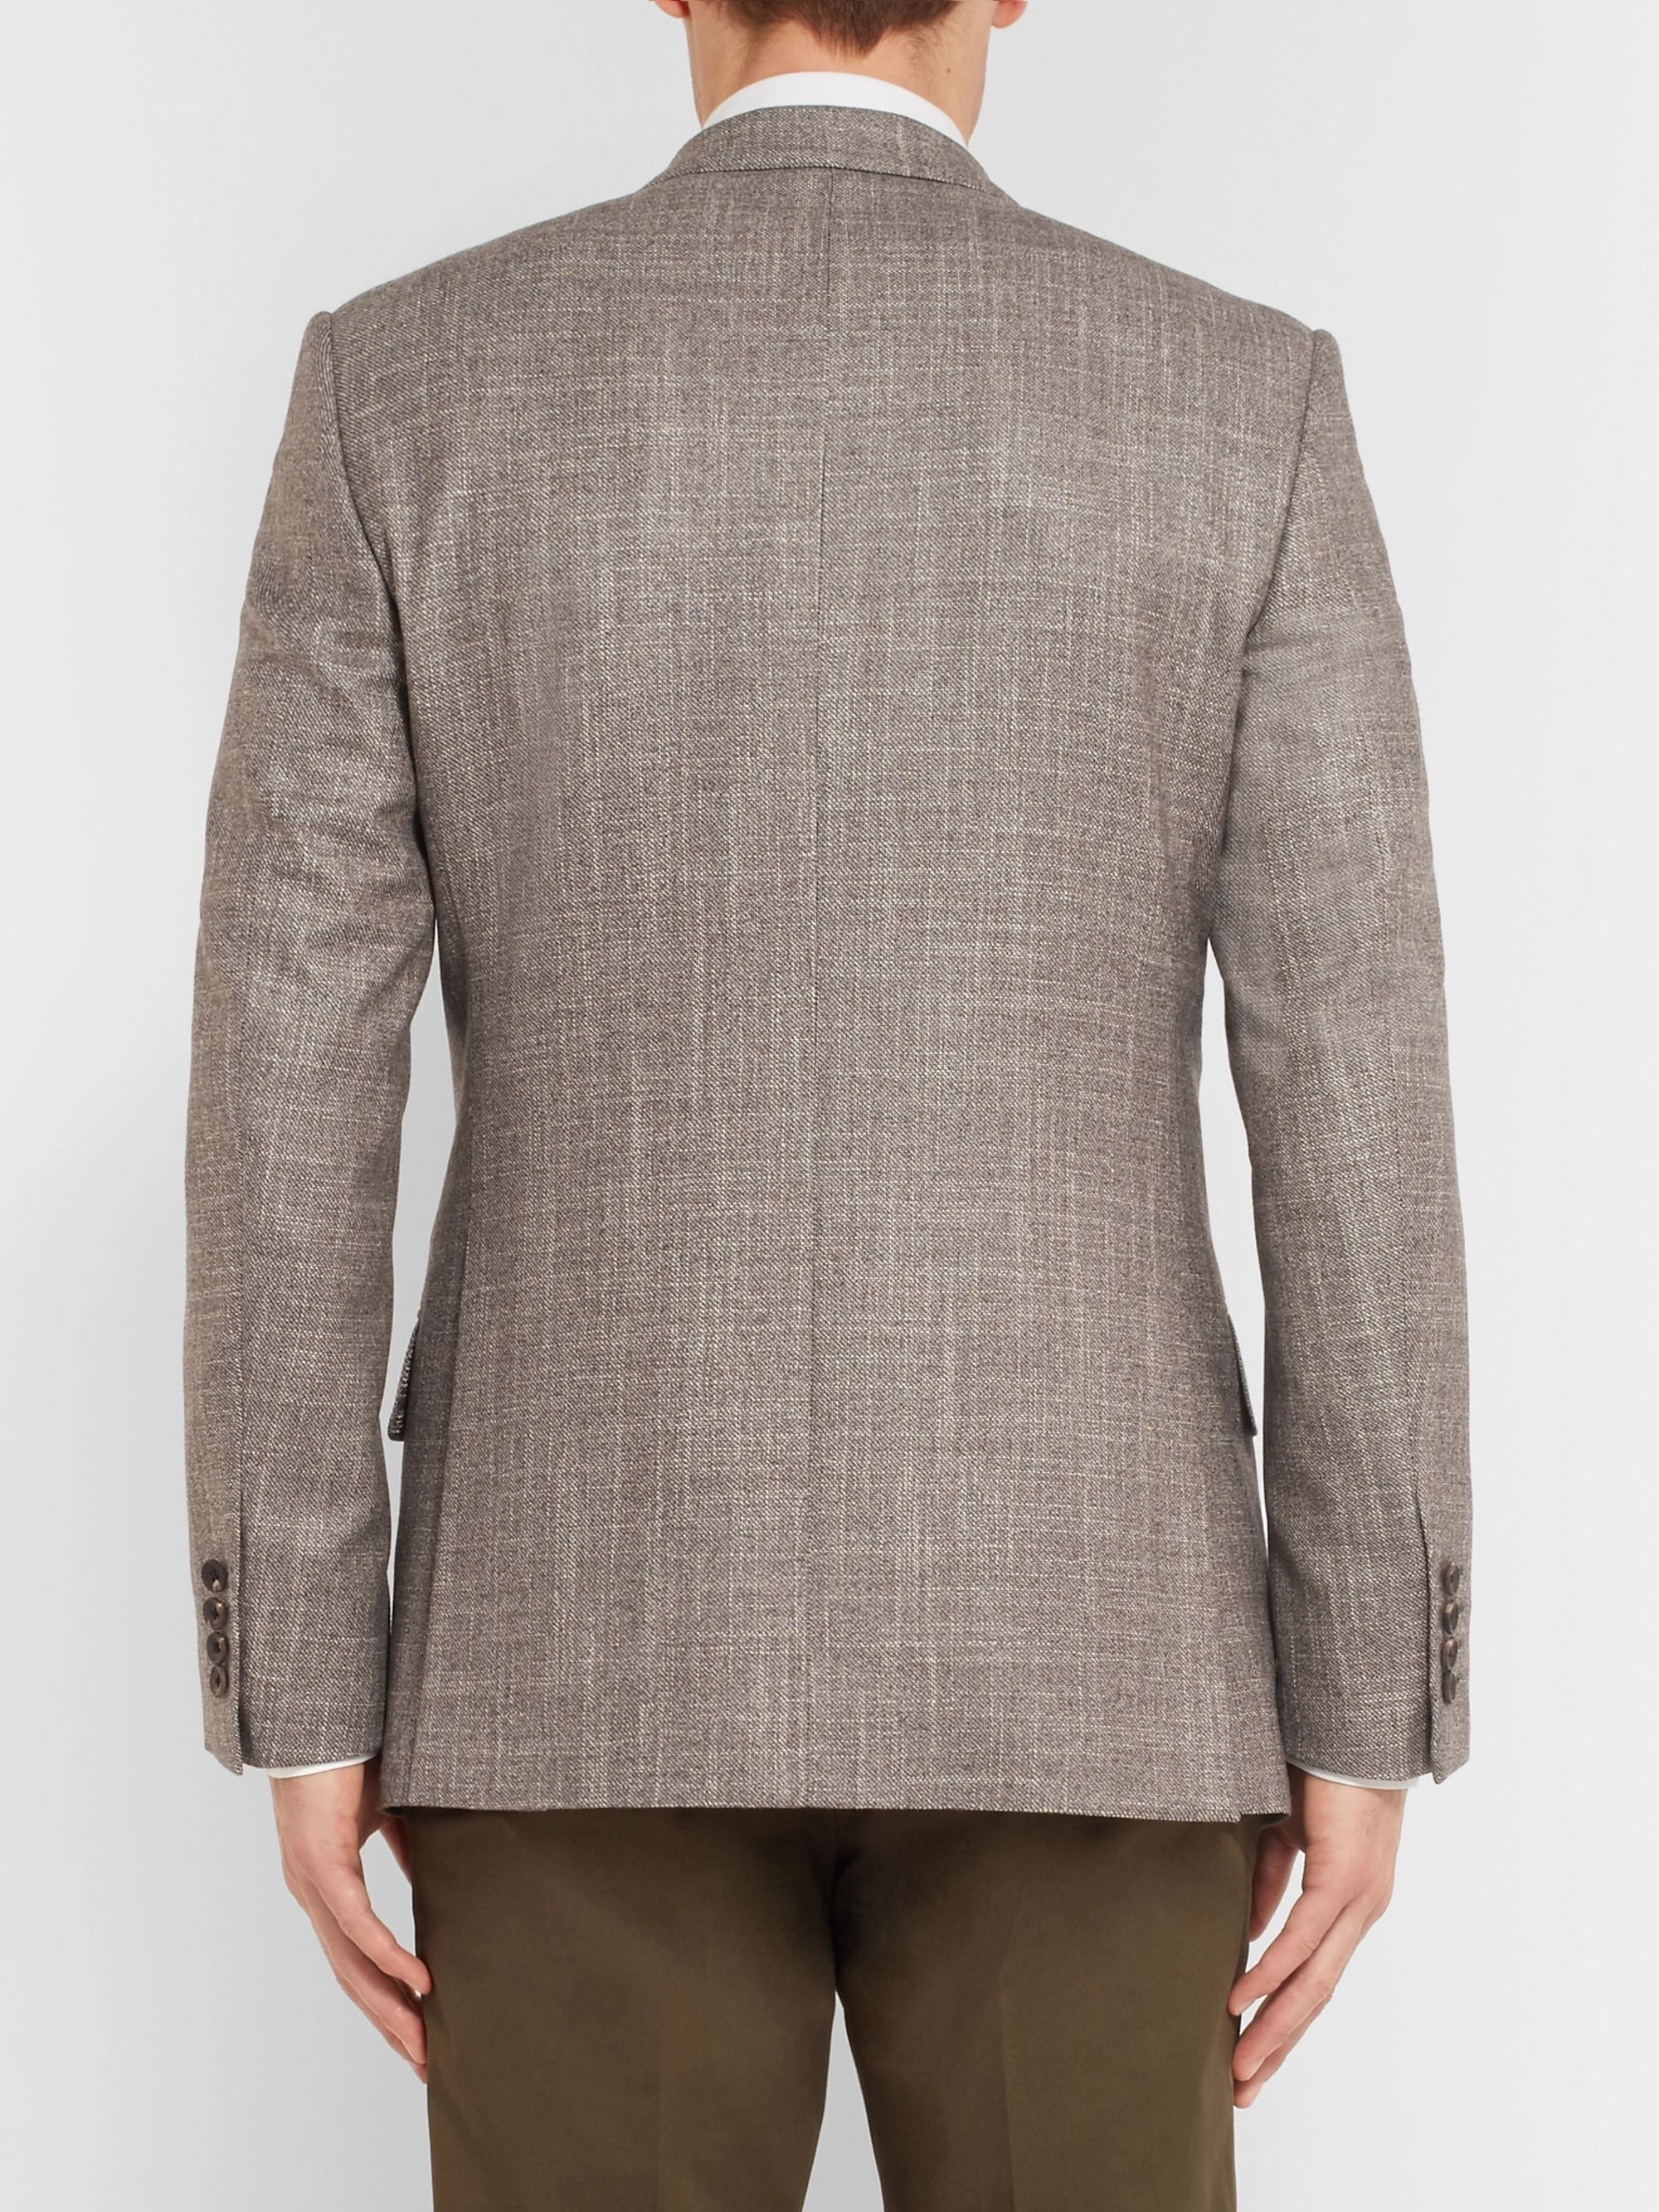 Kingsman Harry's Brown Mélange Wool, Silk and Cashmere-Blend Suit Jacket